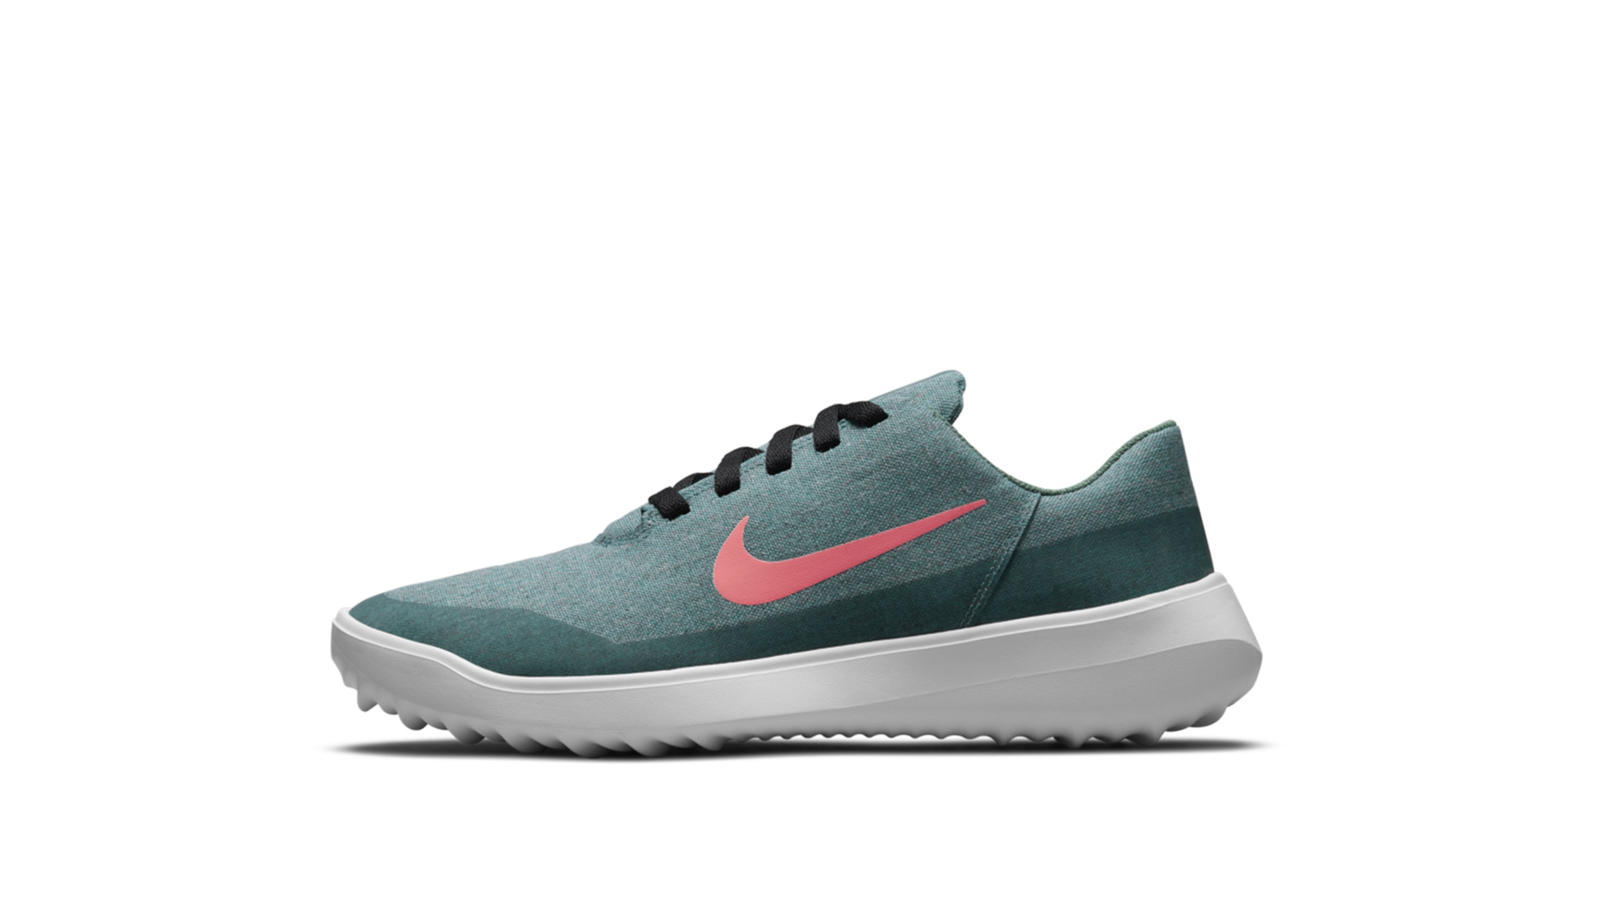 Nike Move to Zero Footwear Summer 2021 Official Images 8